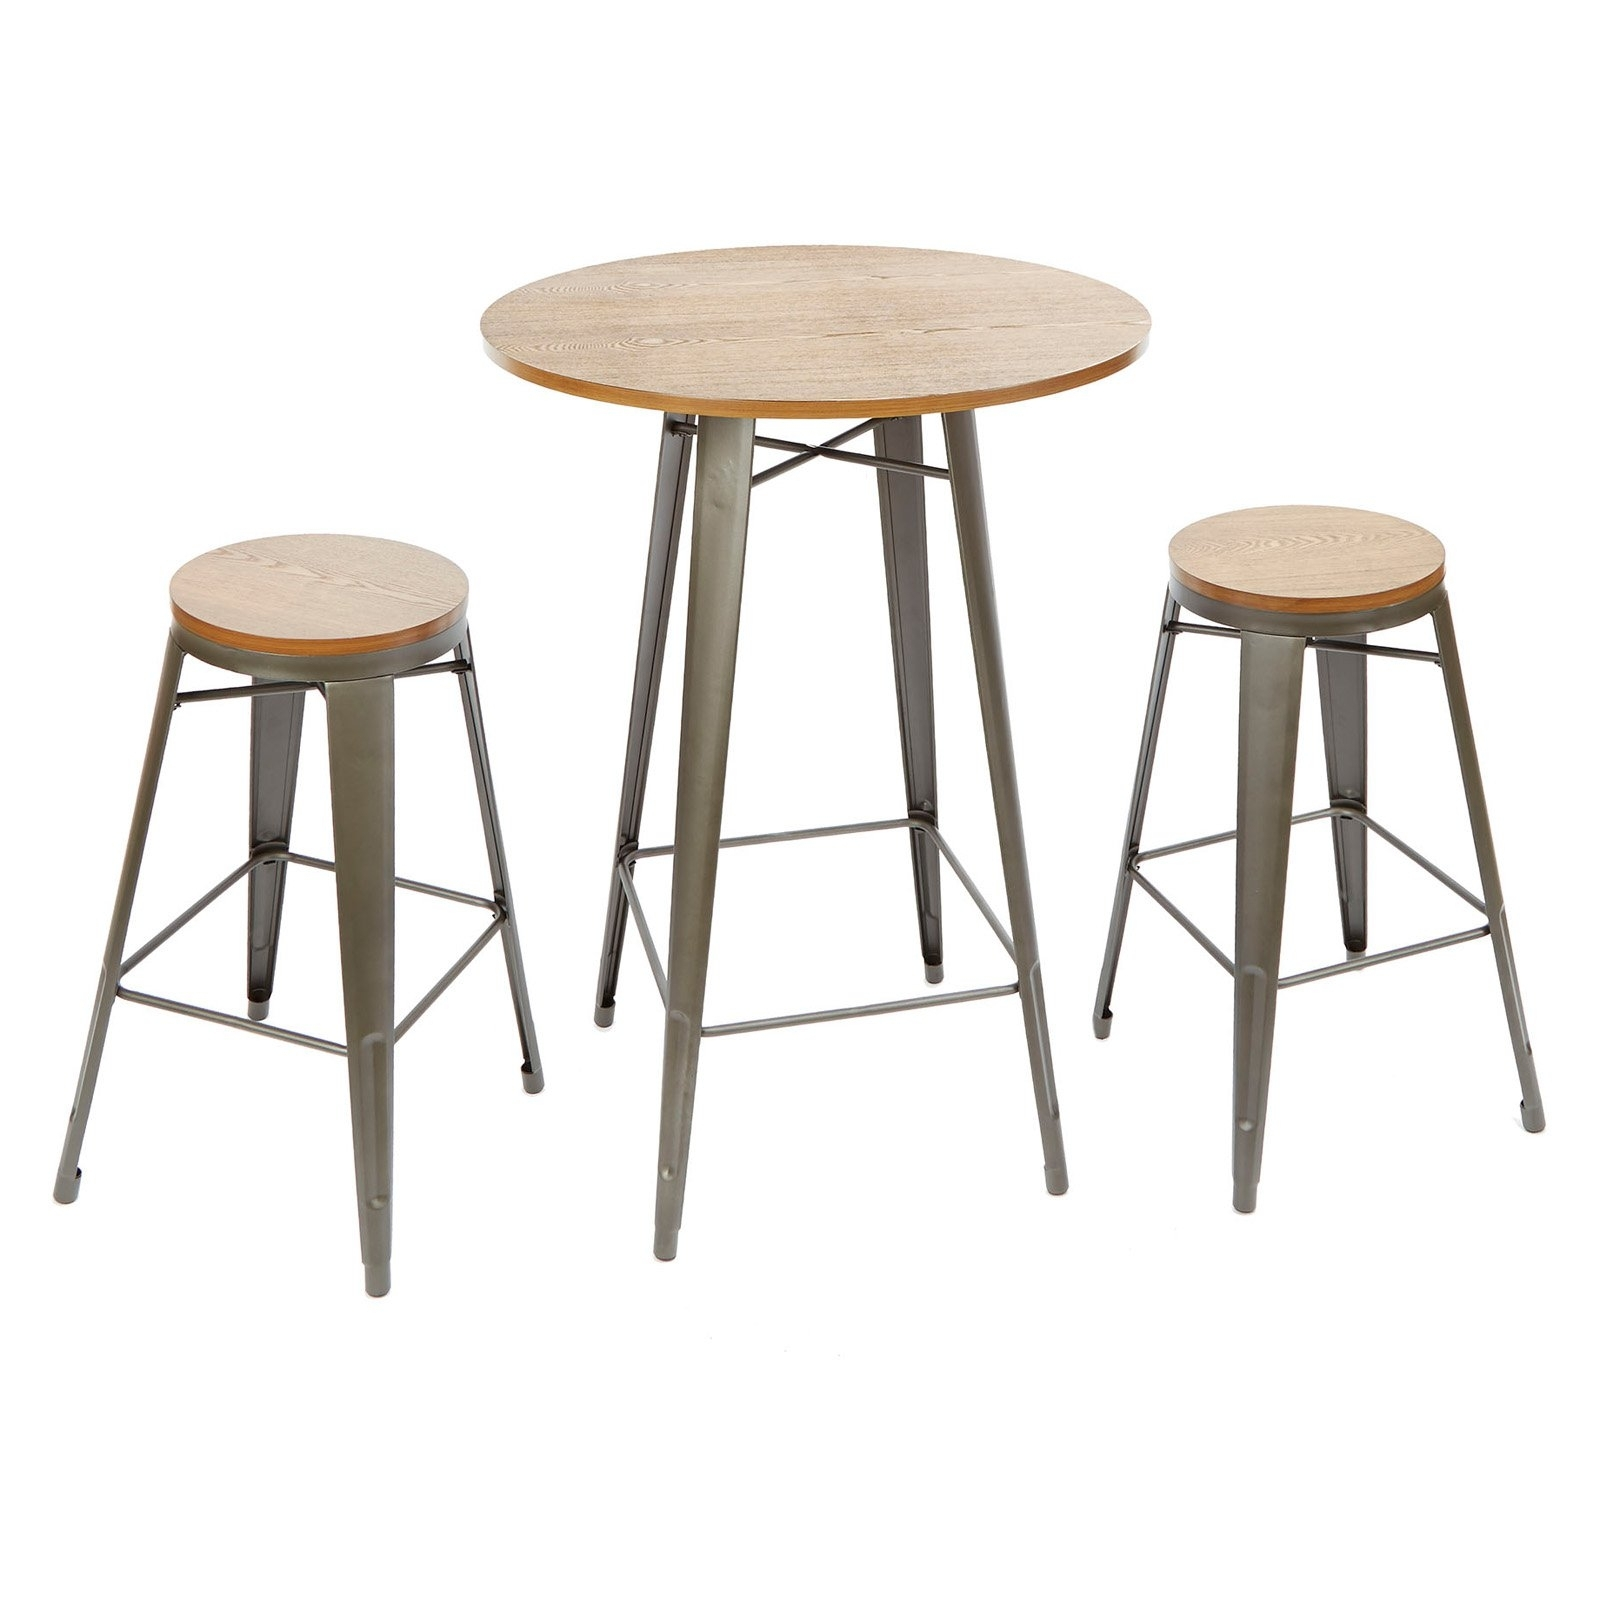 Better Homes And Gardens Harper 3 Piece Pub Set, Multiple Colors Within Recent Harper 5 Piece Counter Sets (Image 5 of 20)